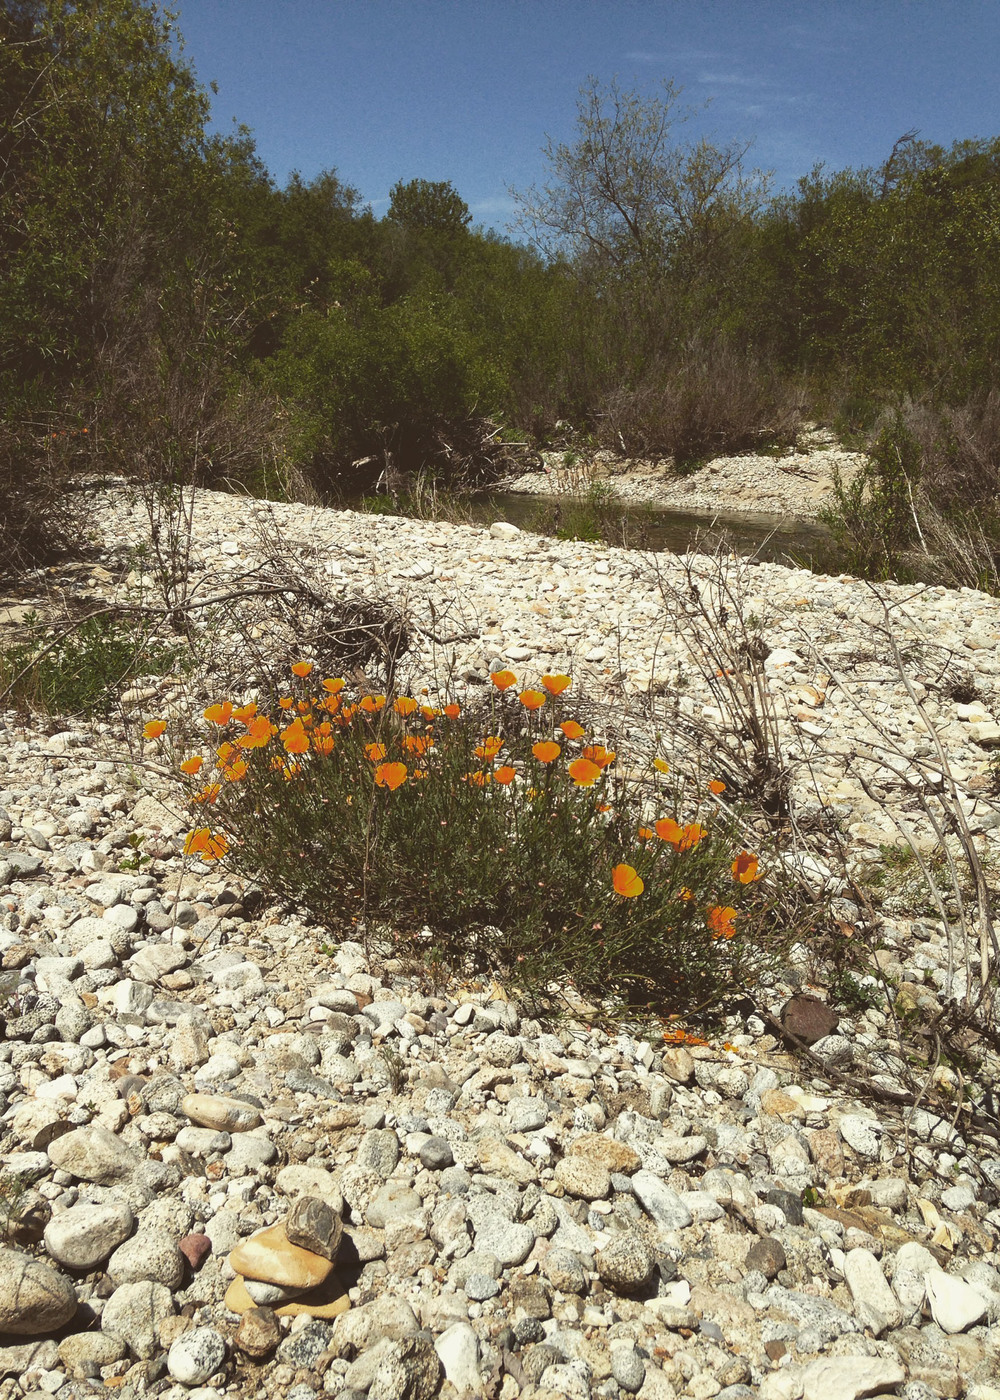 Sisters Of The West explores the Carmel Valley River and finds California Poppy in bloom among the rocks.  Plant medicine, native healing, indigenous allies.